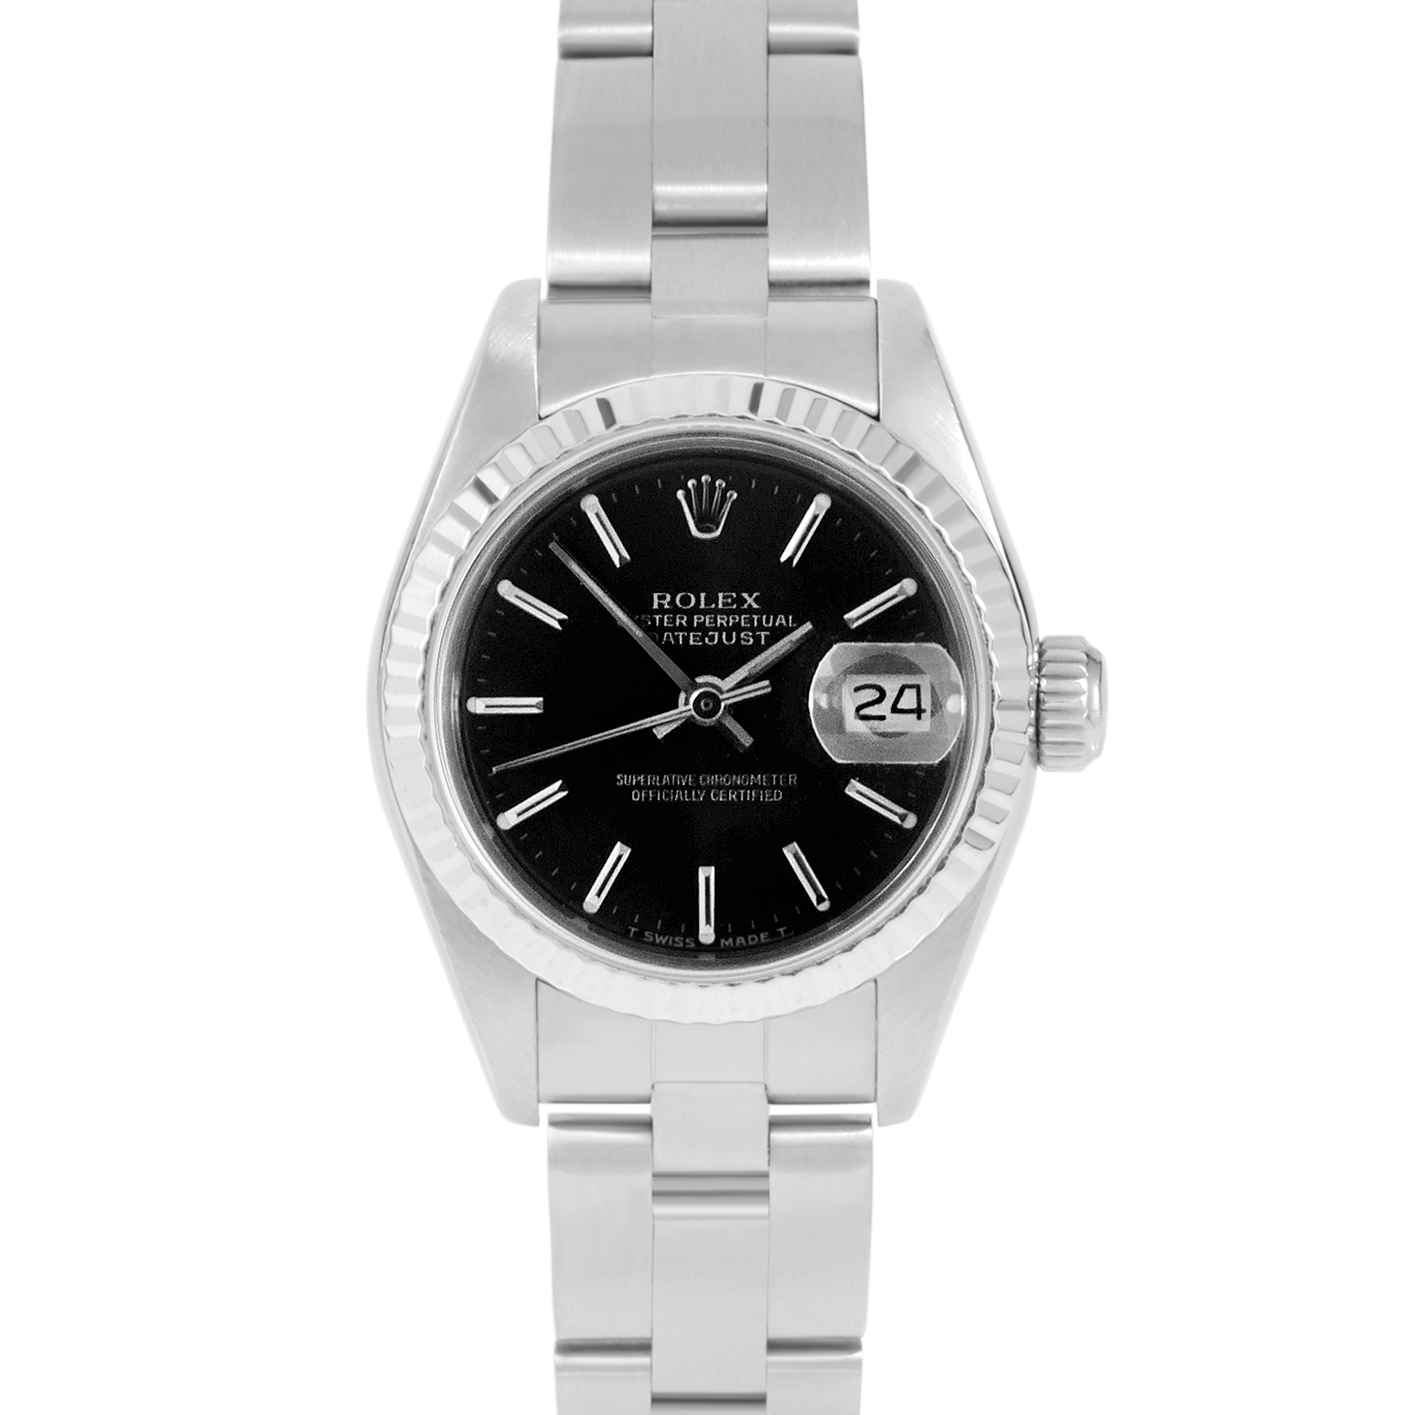 Rolex Datejust 26 69174 White Gold & Stainless Steel, Black Stick, Fluted Bezel On An Oyster Bracelet - Ladies Pre-Owned Watch